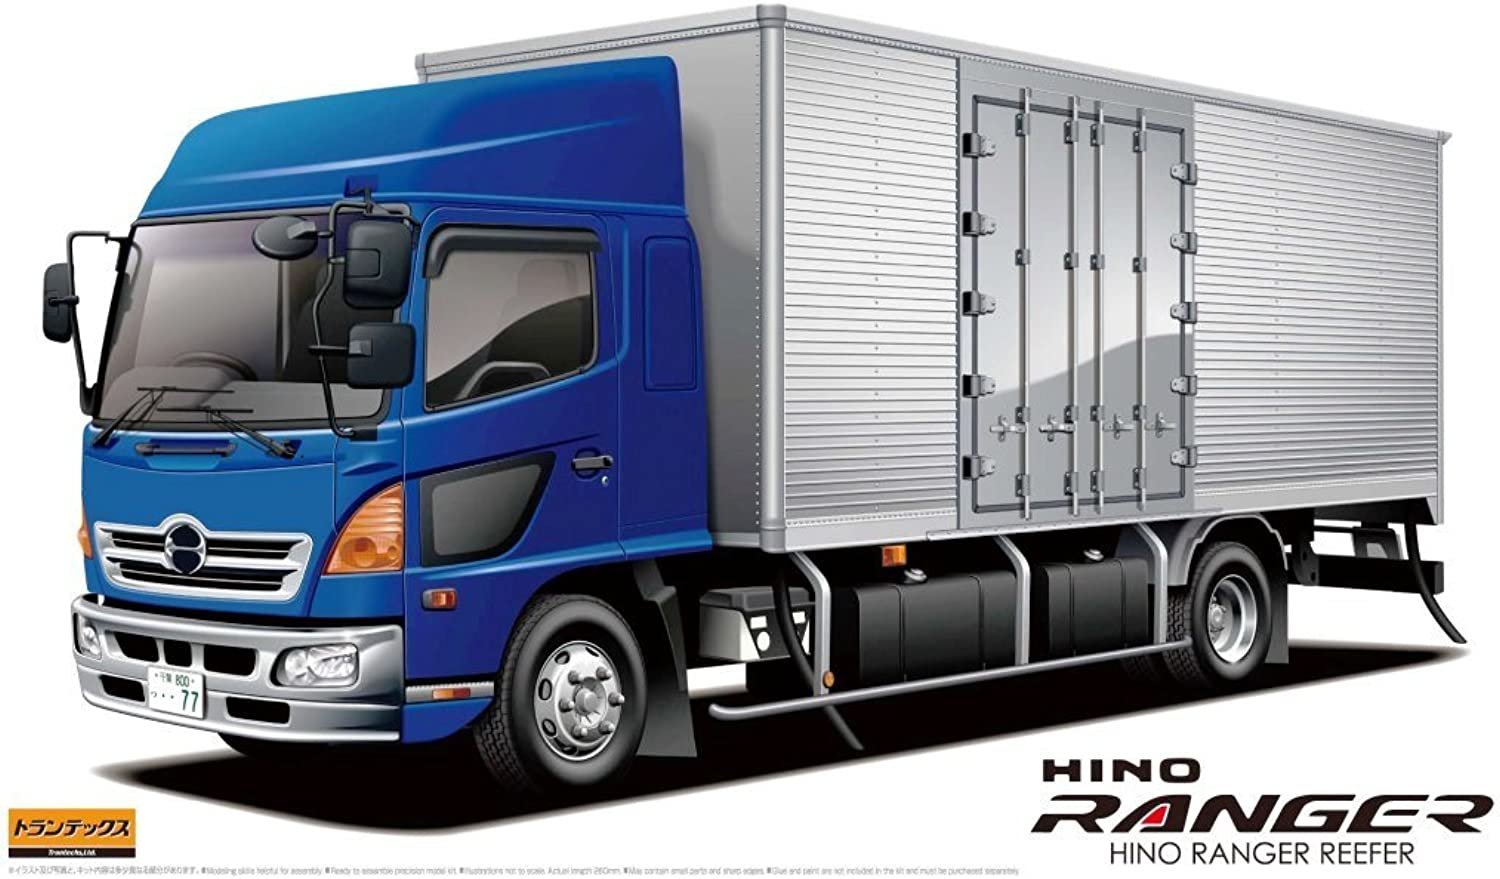 1 32 Himo Profia Ranger Refrigerated Truck